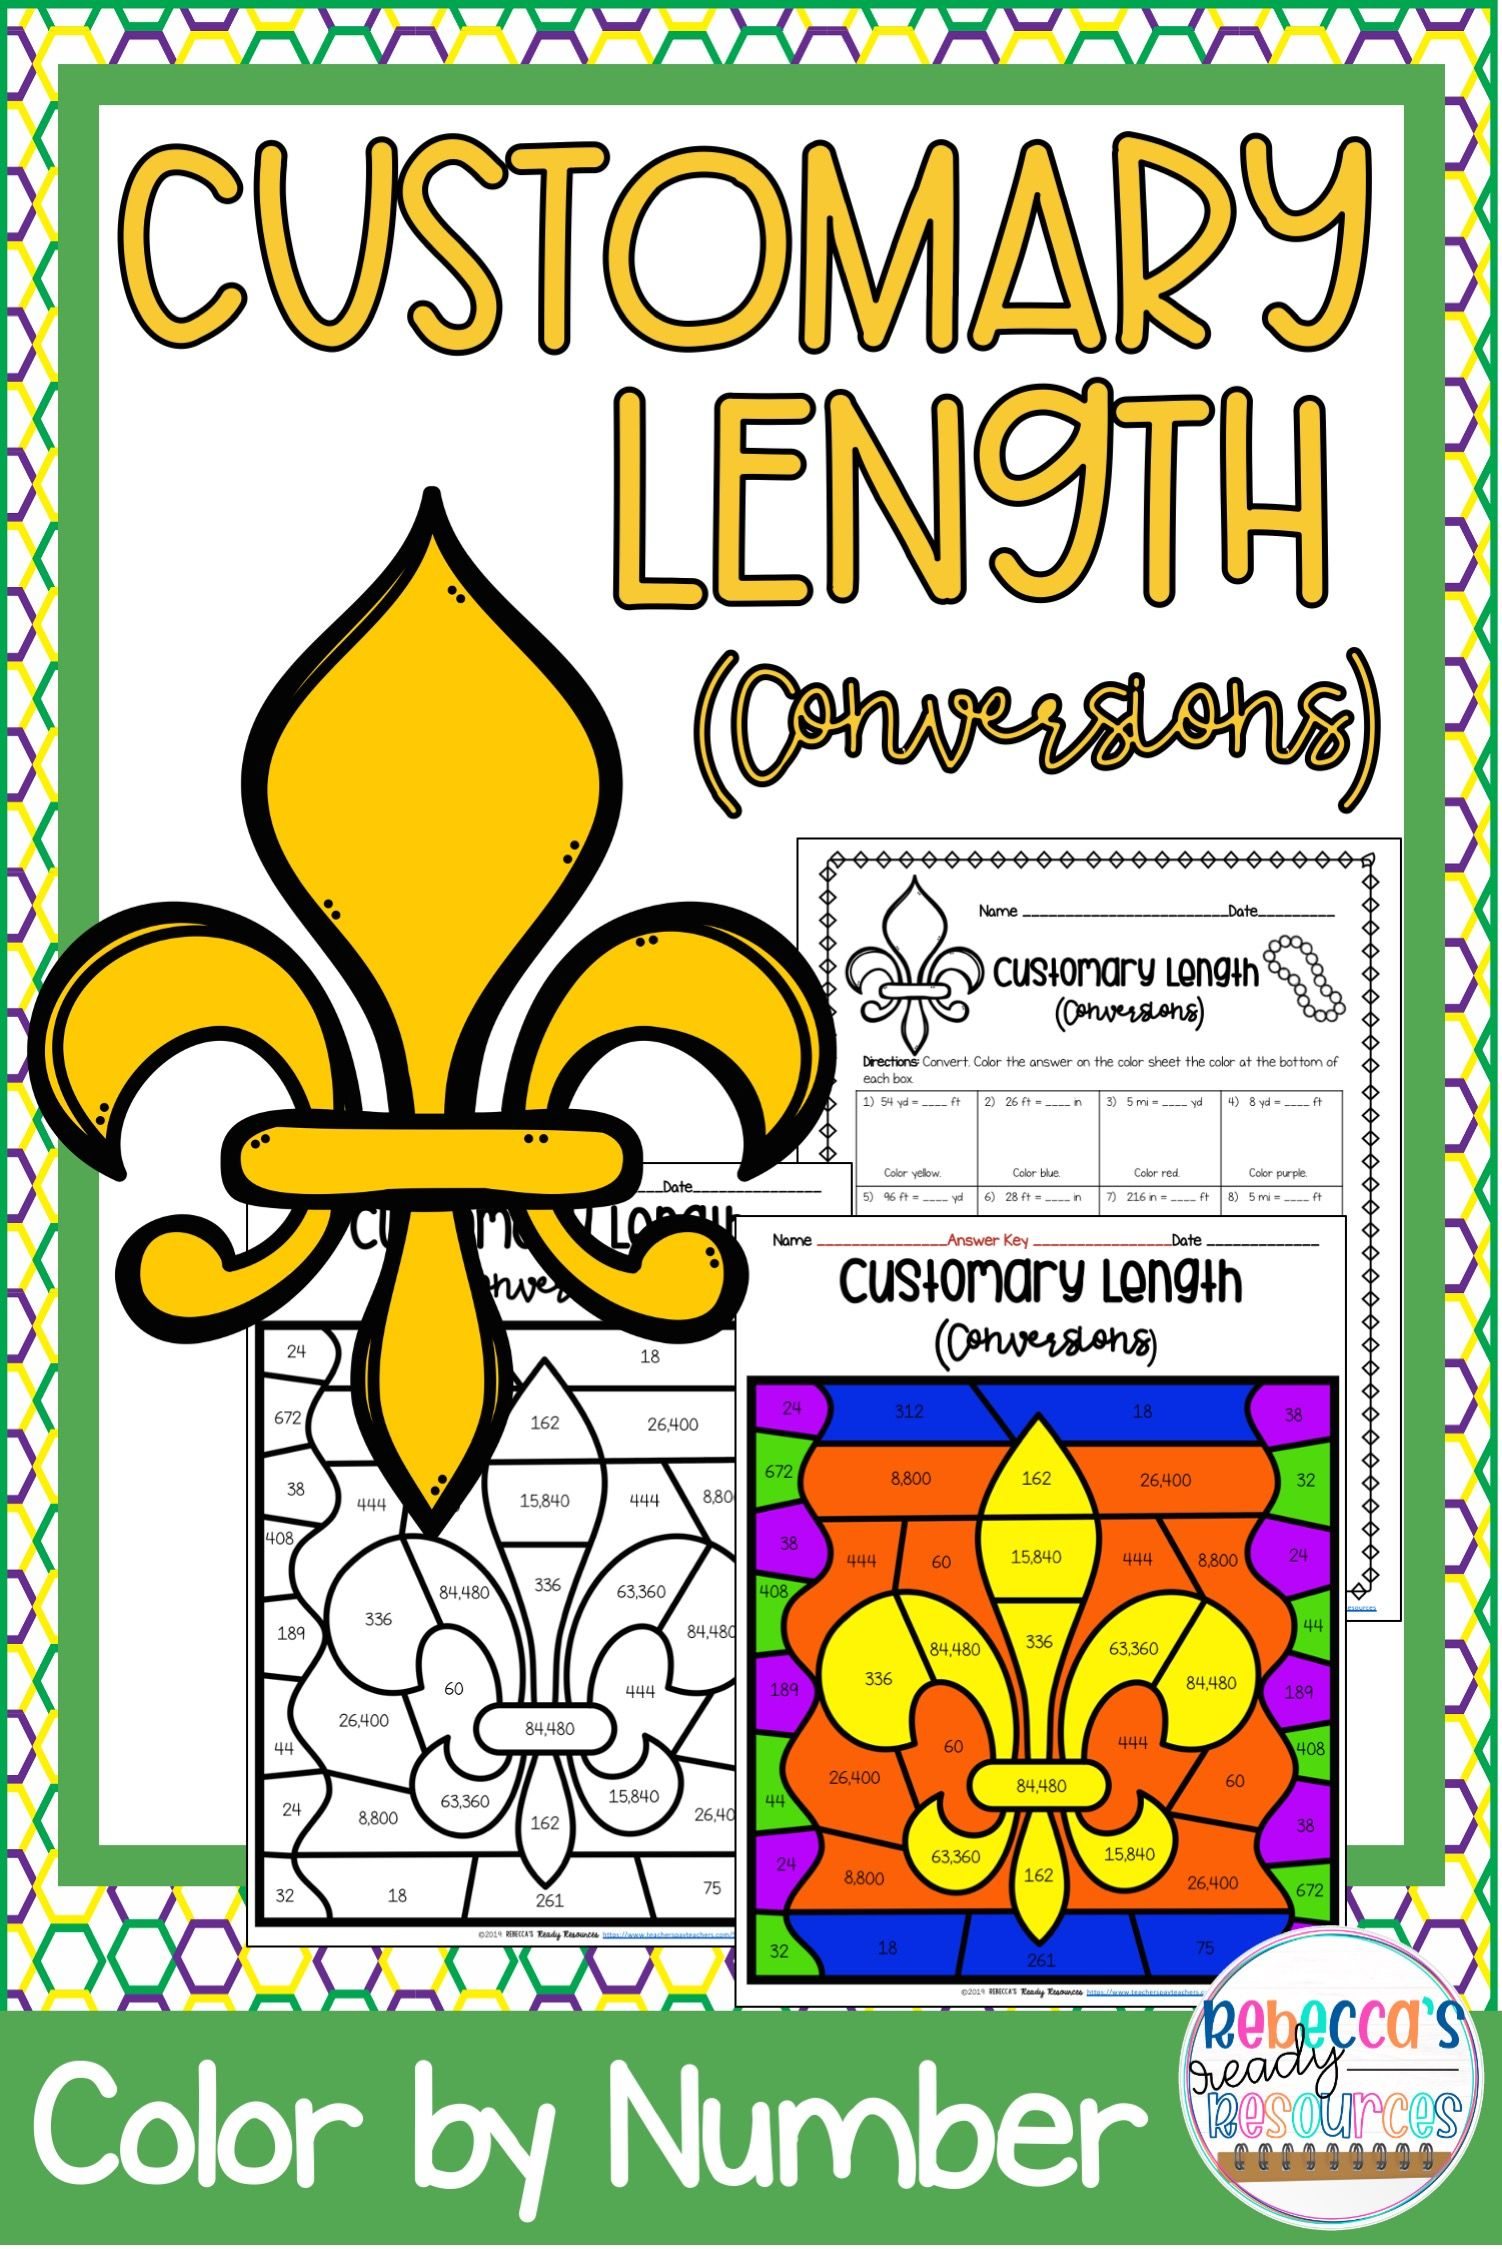 Mardi Gras Customary Length Conversions Color By Number